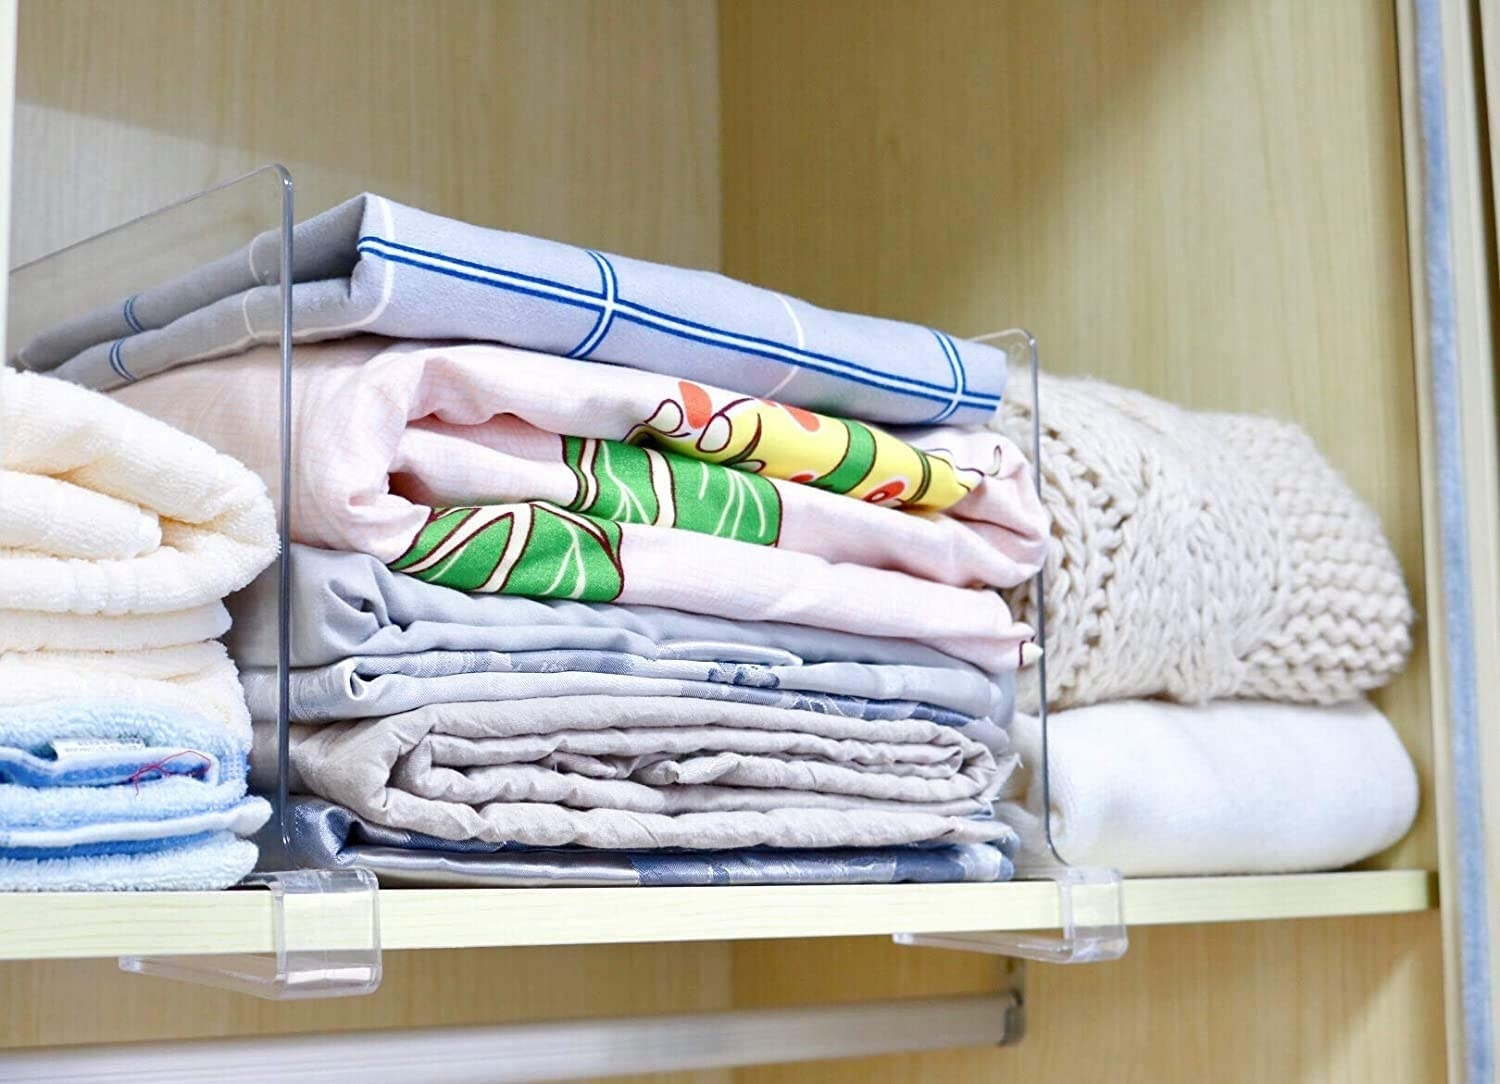 stacks of clothes between the dividers